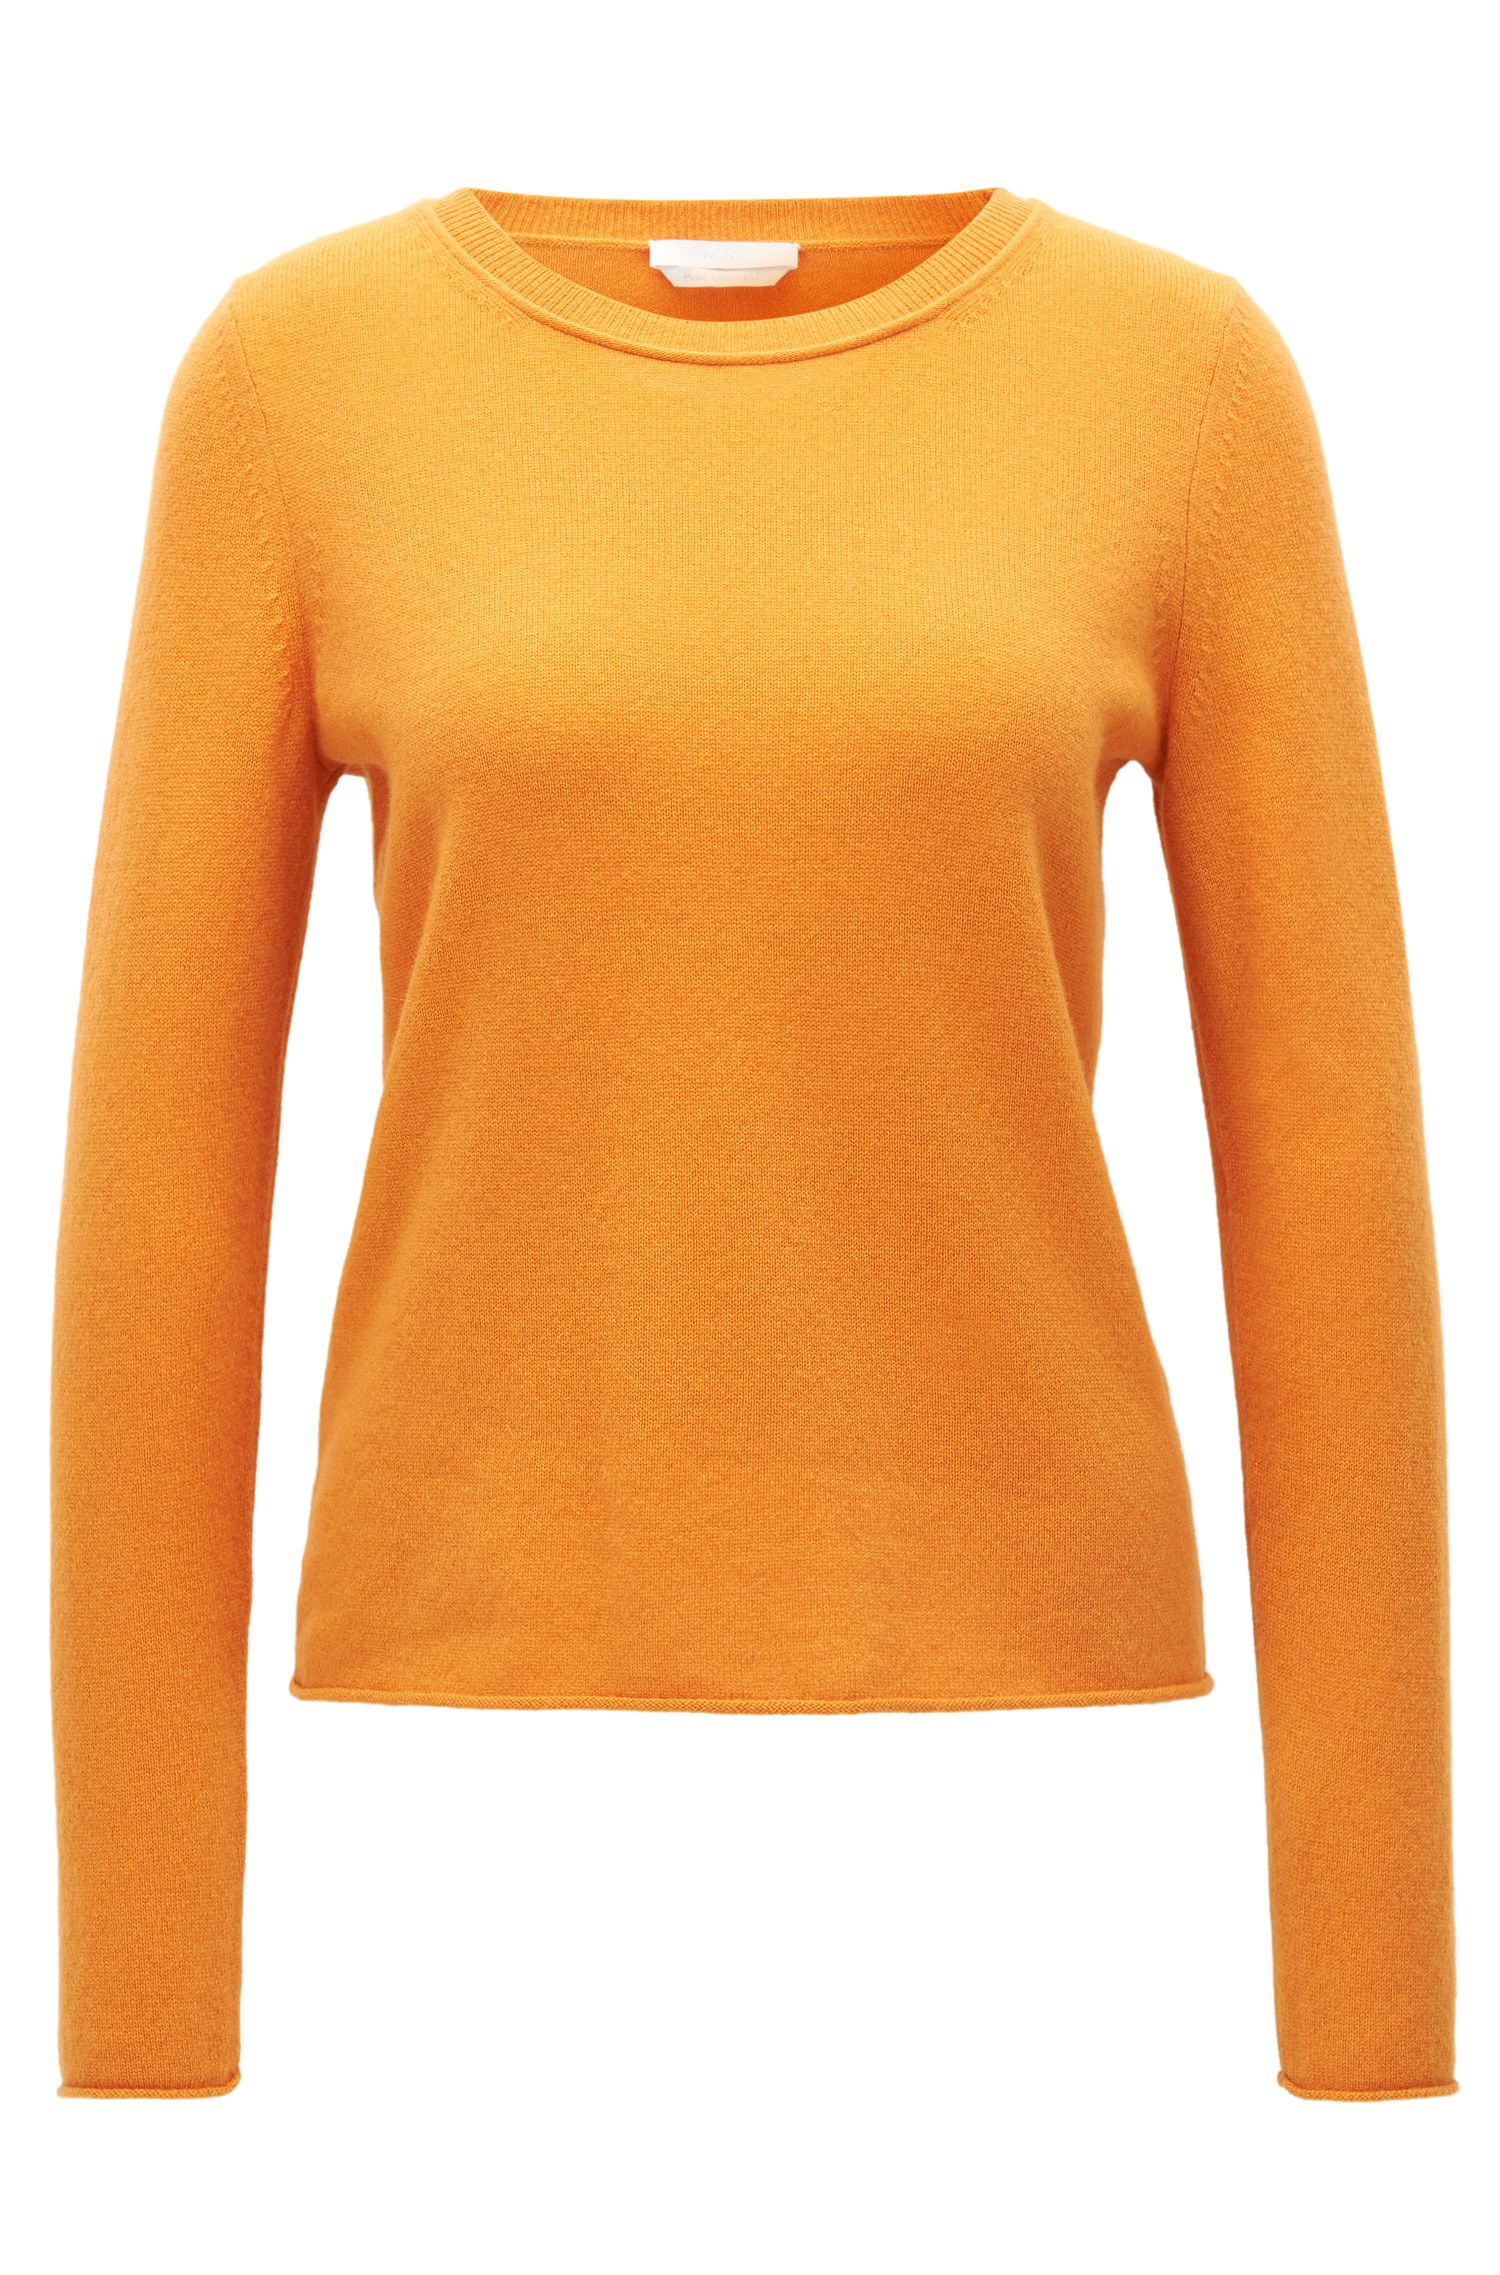 Cashmere sweater with rolled edges